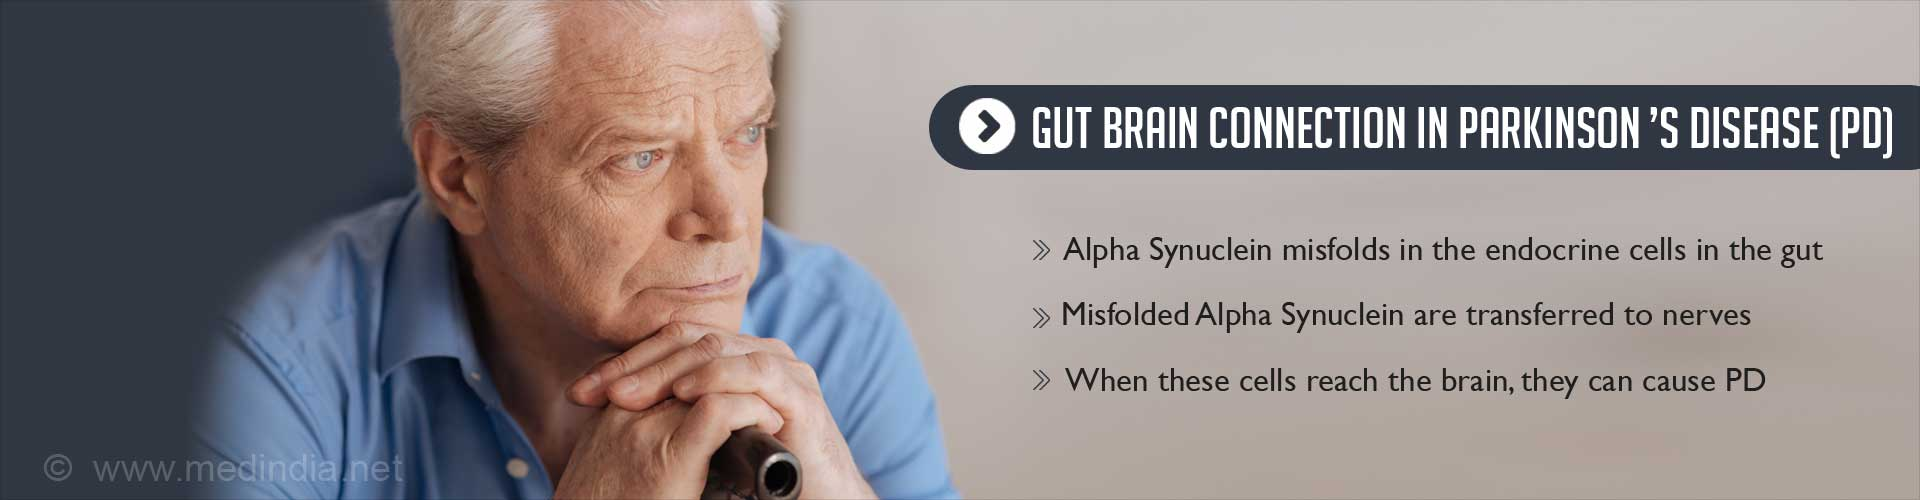 Toxic Proteins That Cause Parkinson's Disease Could Originate in the Gut